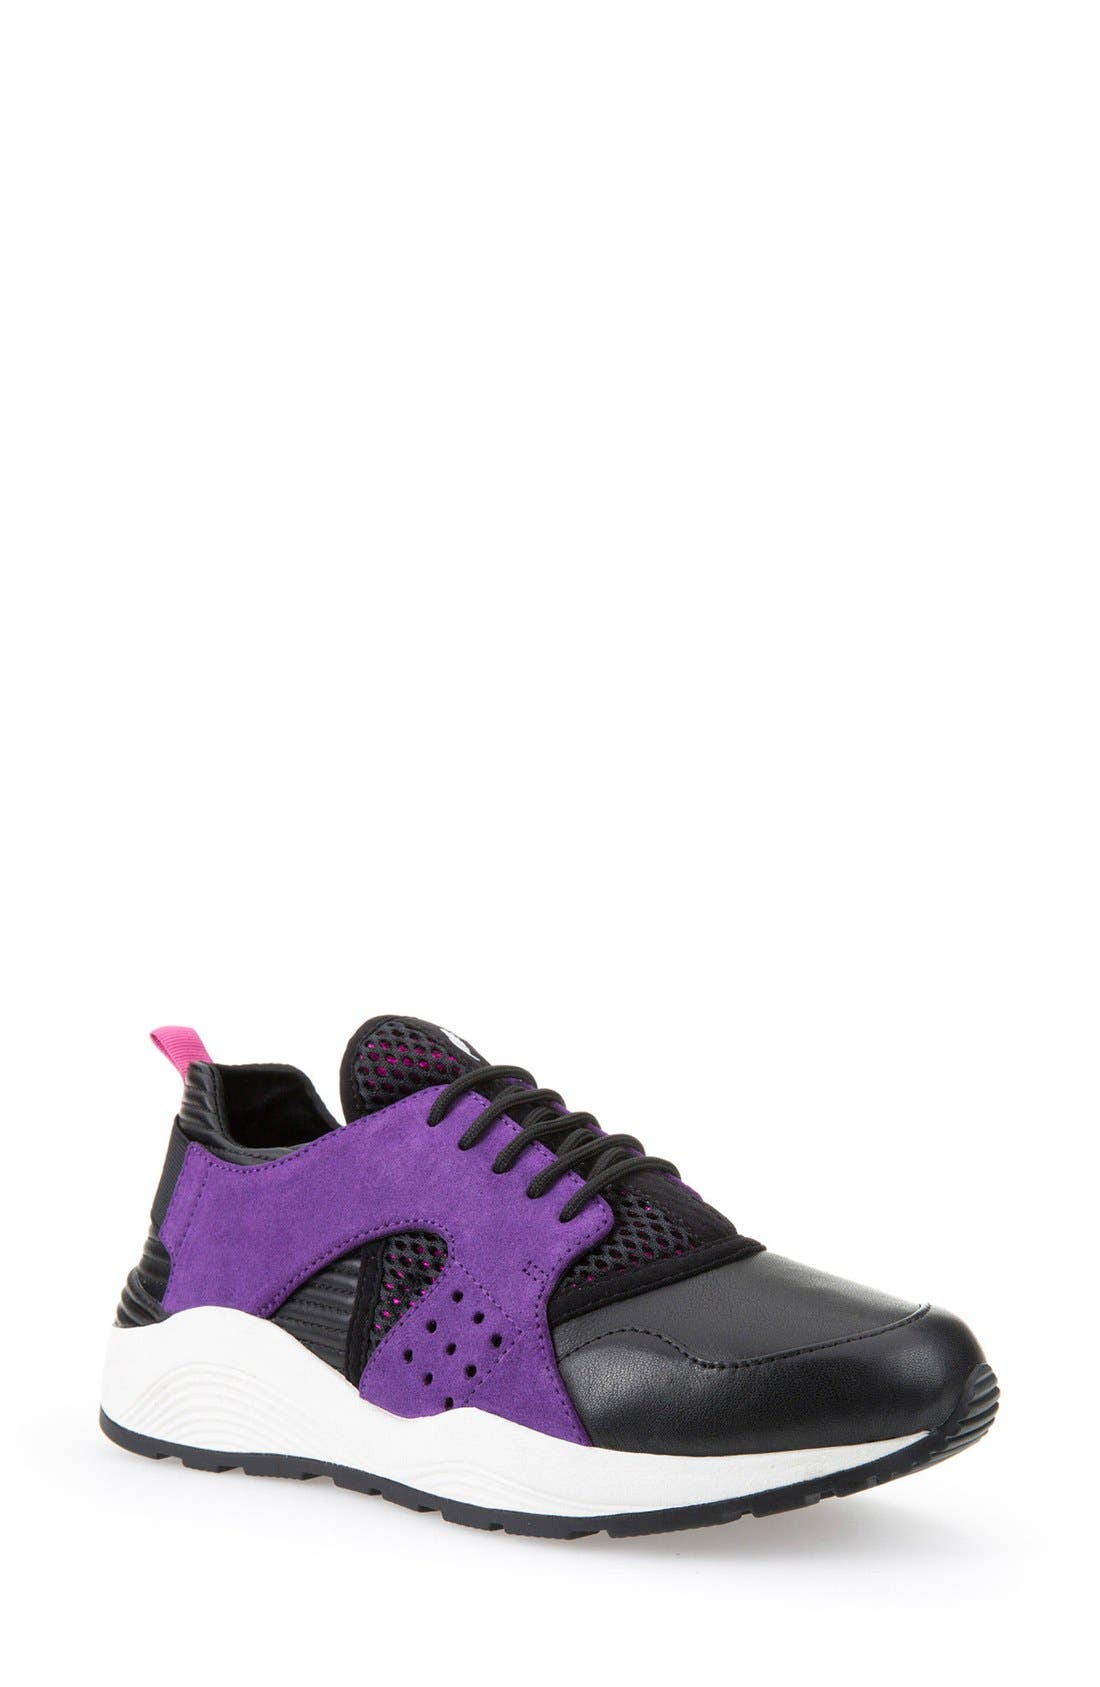 Alternate Image 1 Selected - Geox 'Omaya' Sneaker (Women)